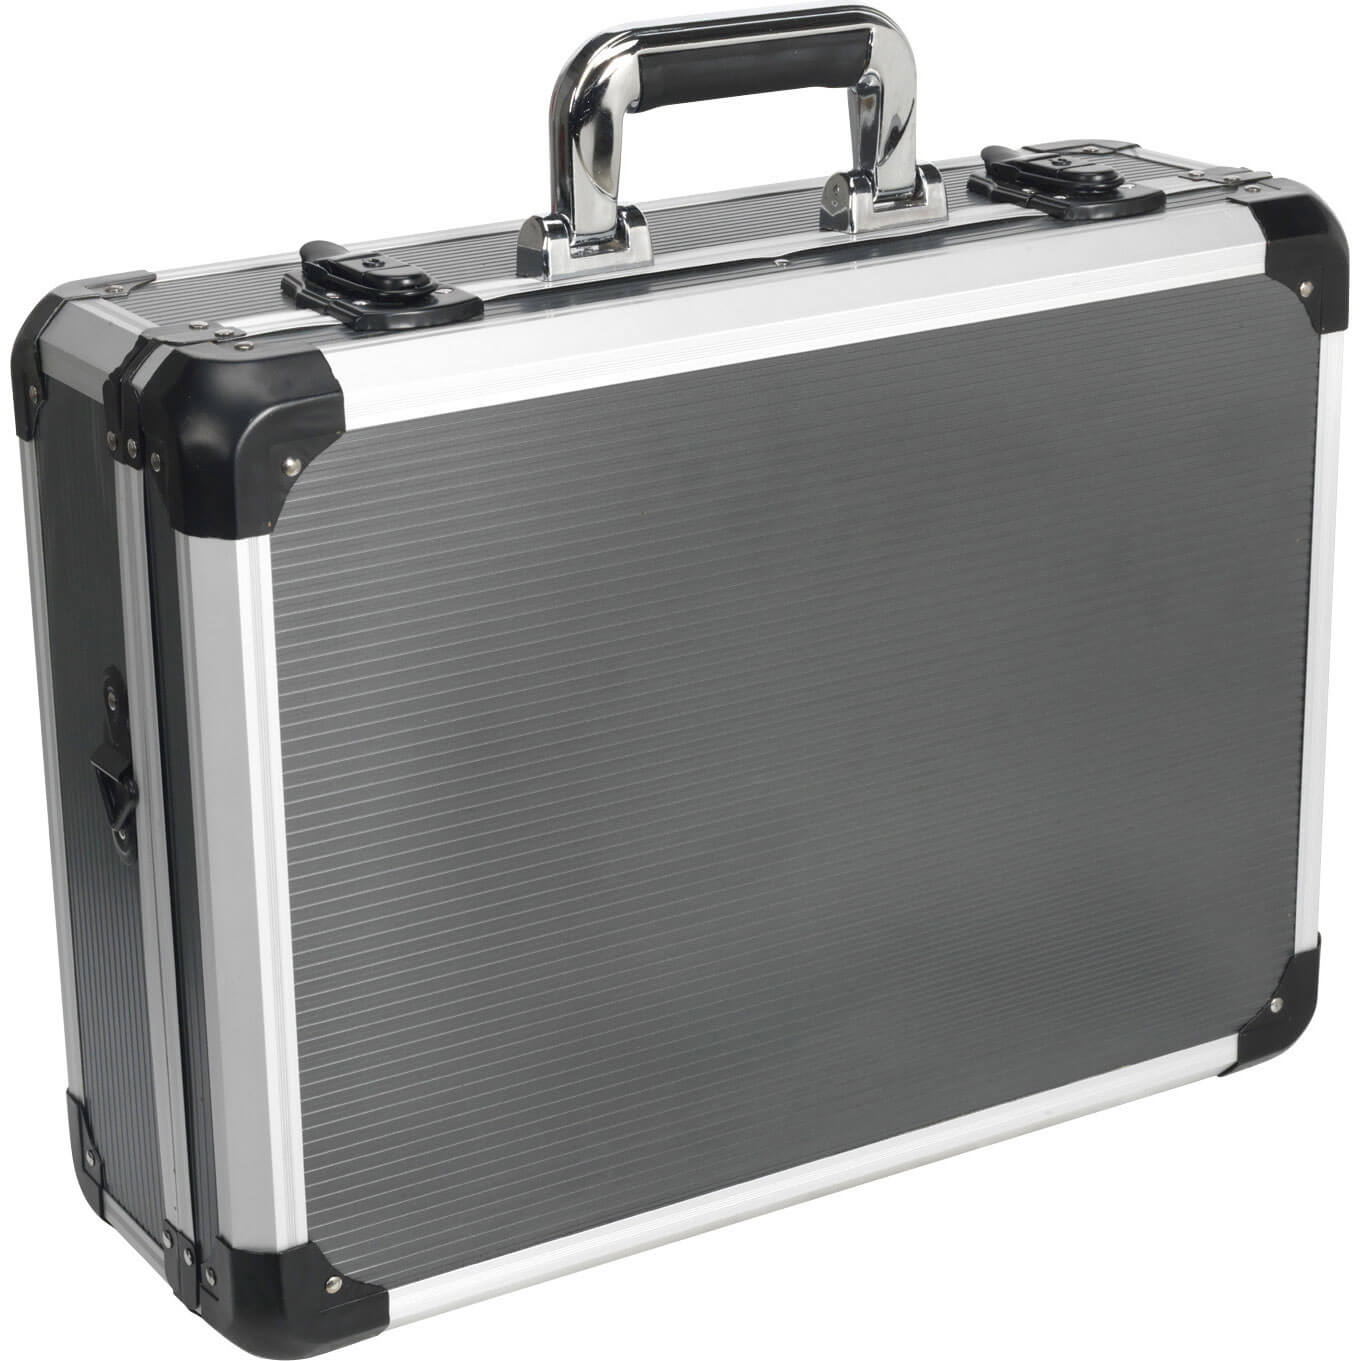 Sealey Aluminium Heavy Duty Tool Case